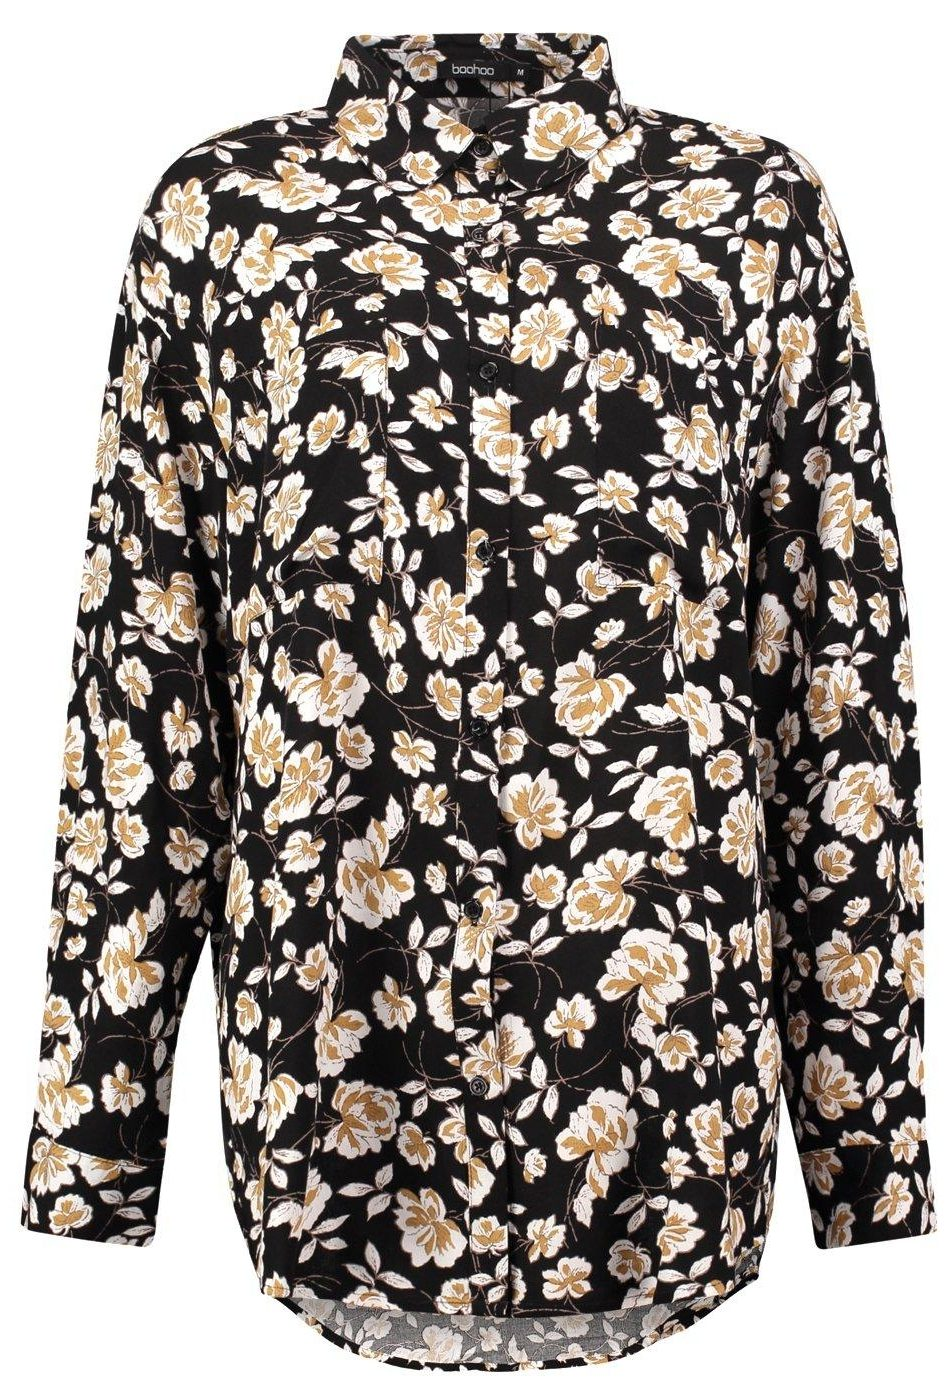 Boohoo Lucy Dark Floral Oversized Shirt